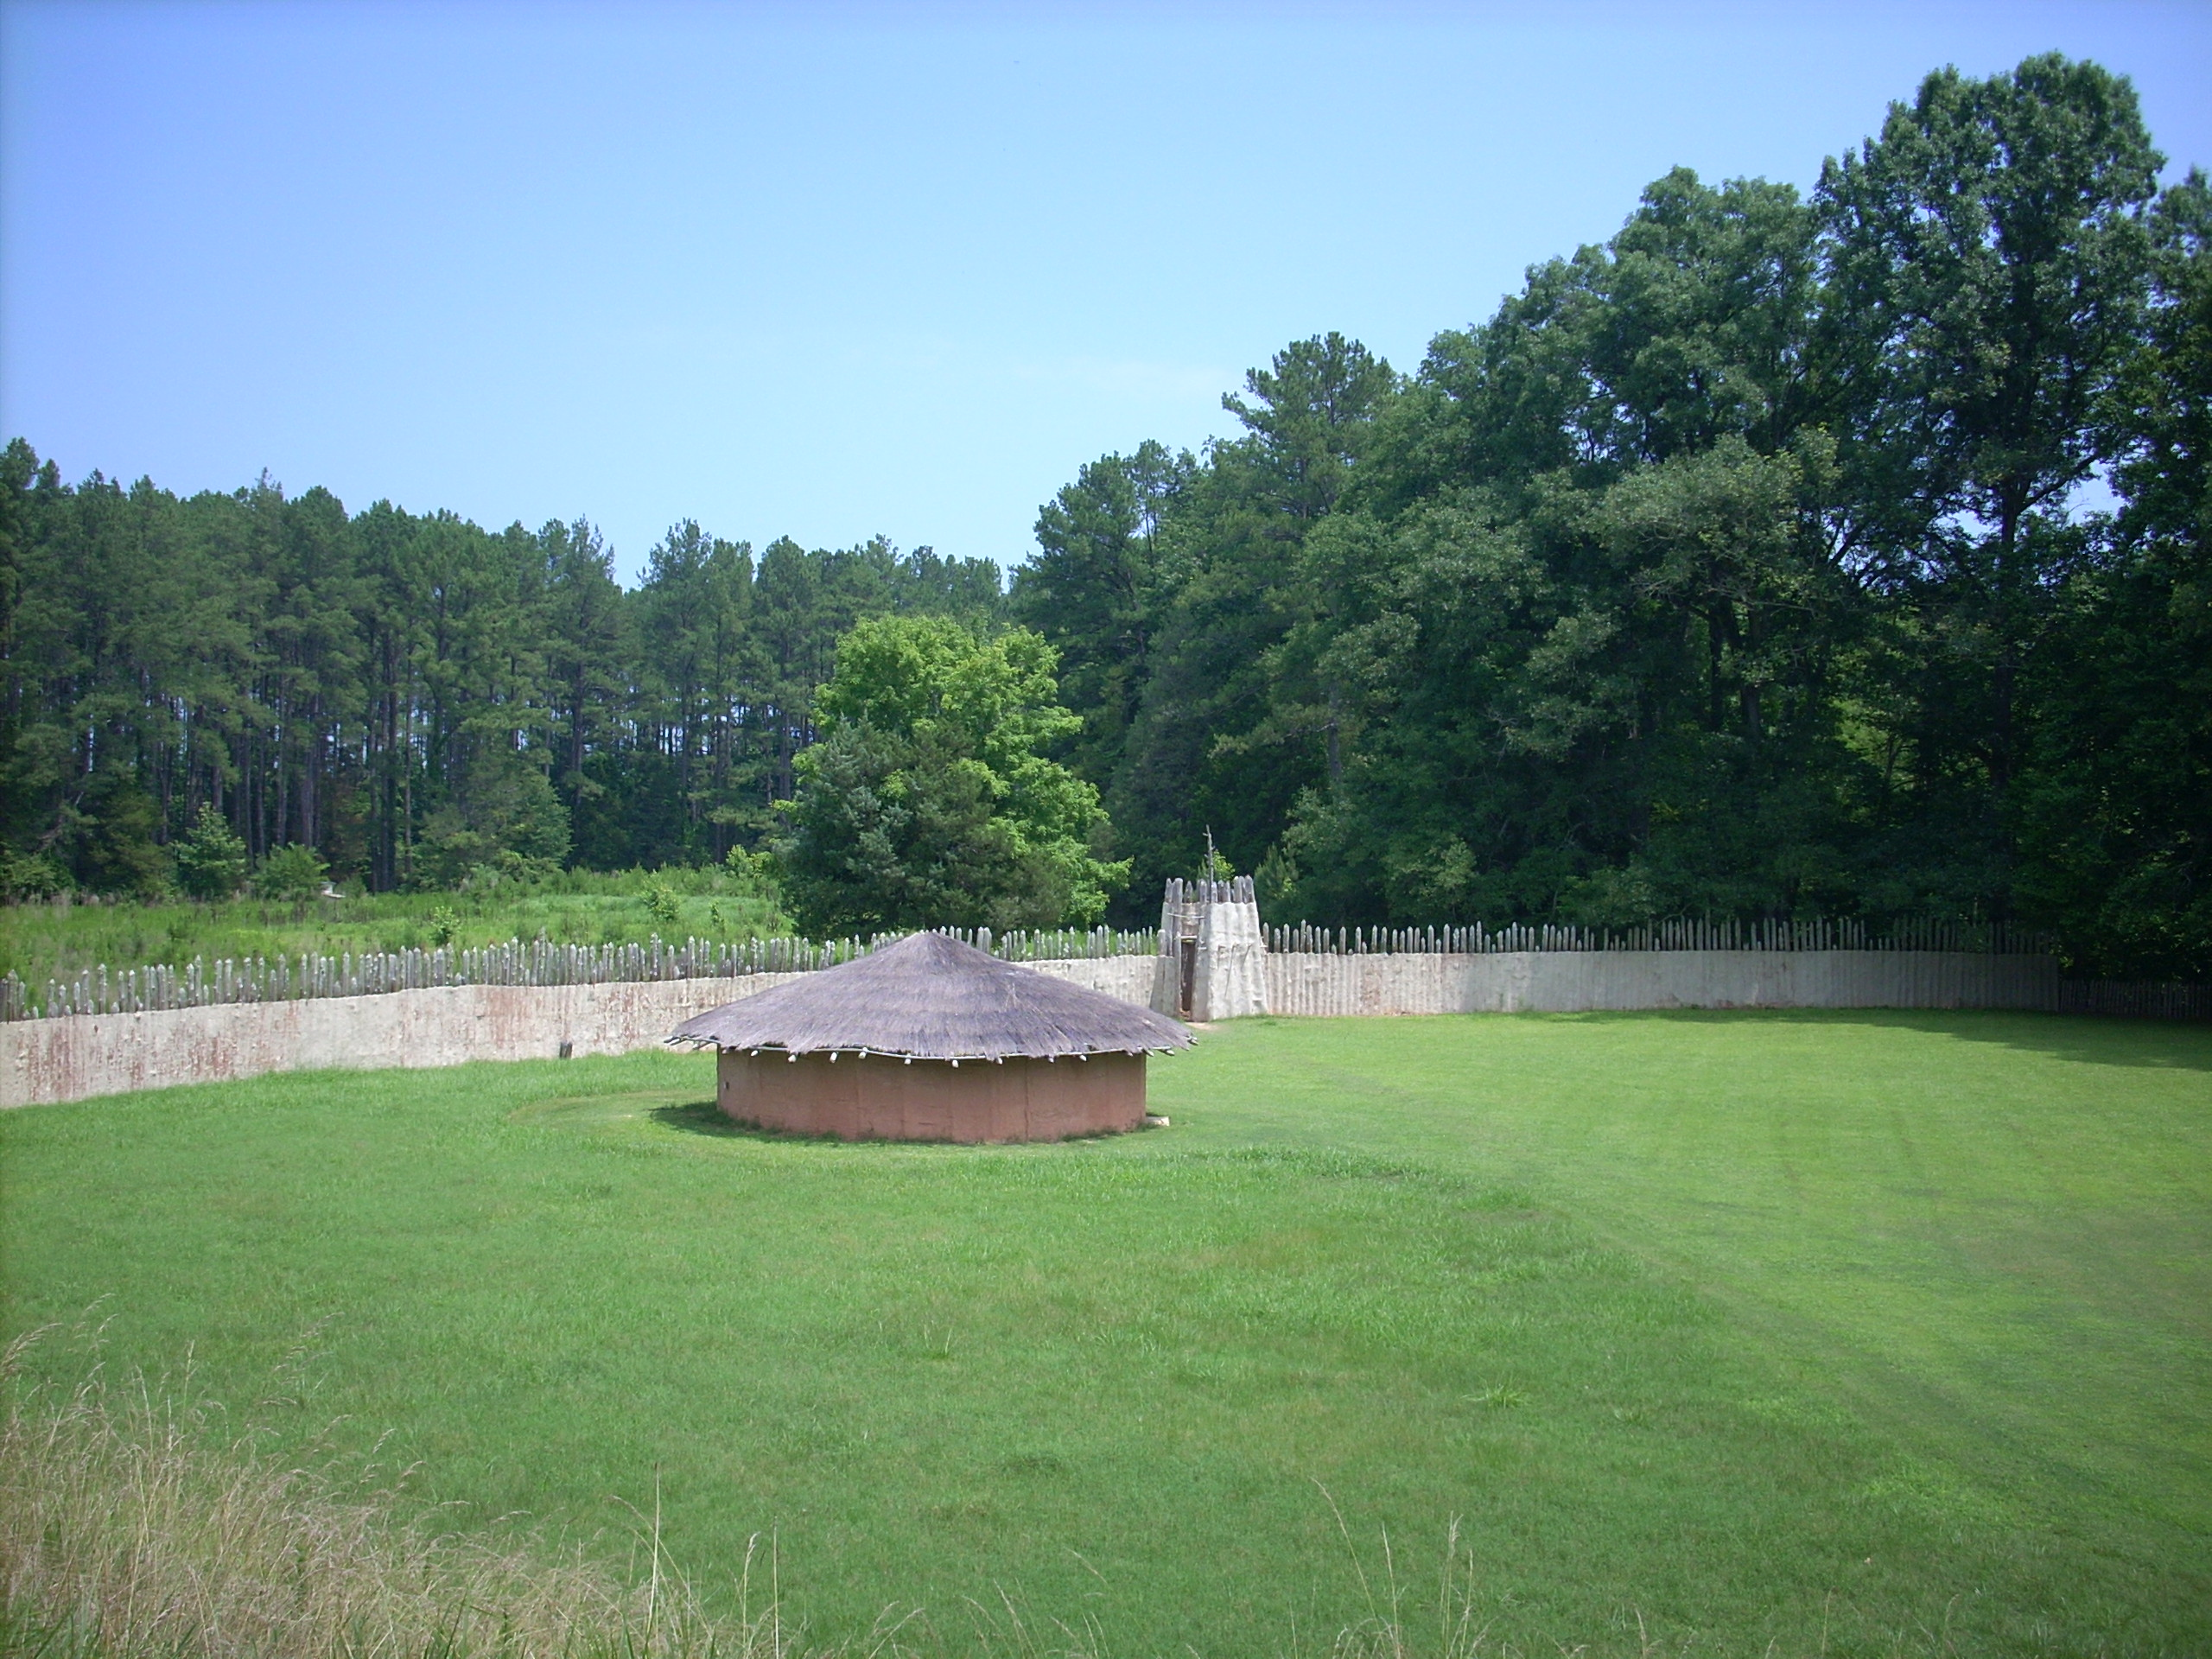 File:Town Creek Indian Mound2.JPG - Wikimedia Commonstown creek town